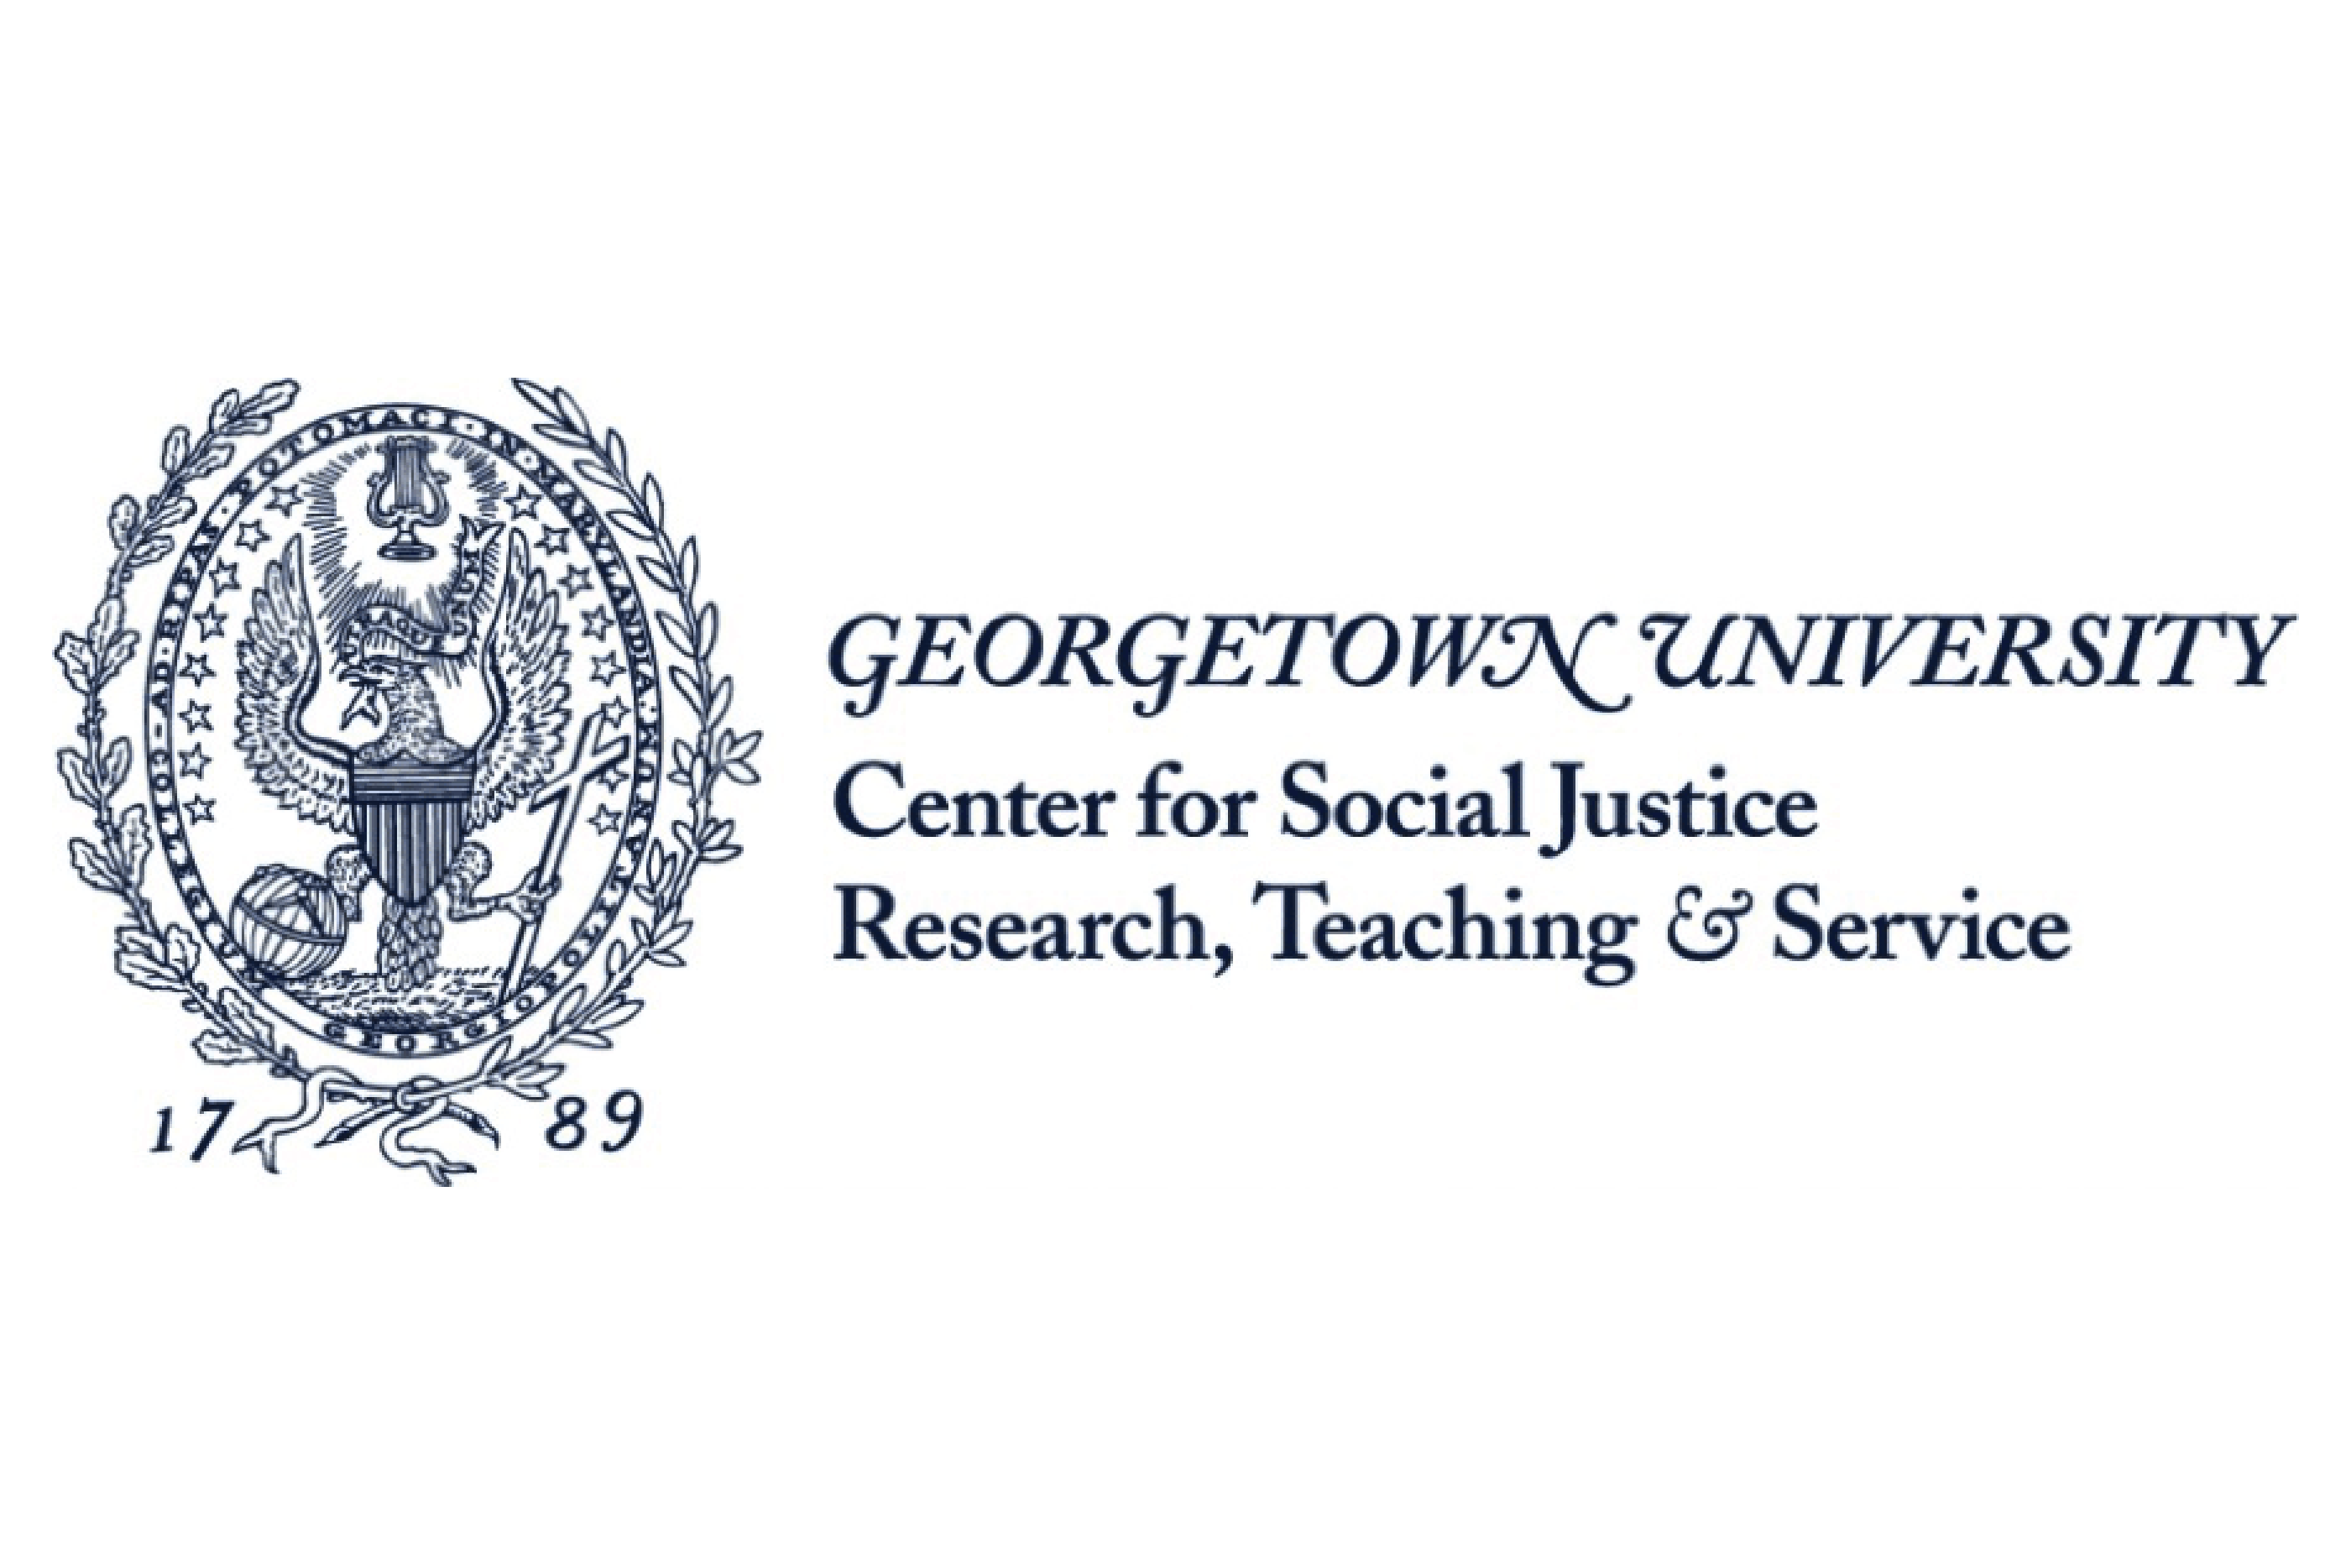 Center for Social Justice Research, Teaching & Service logo